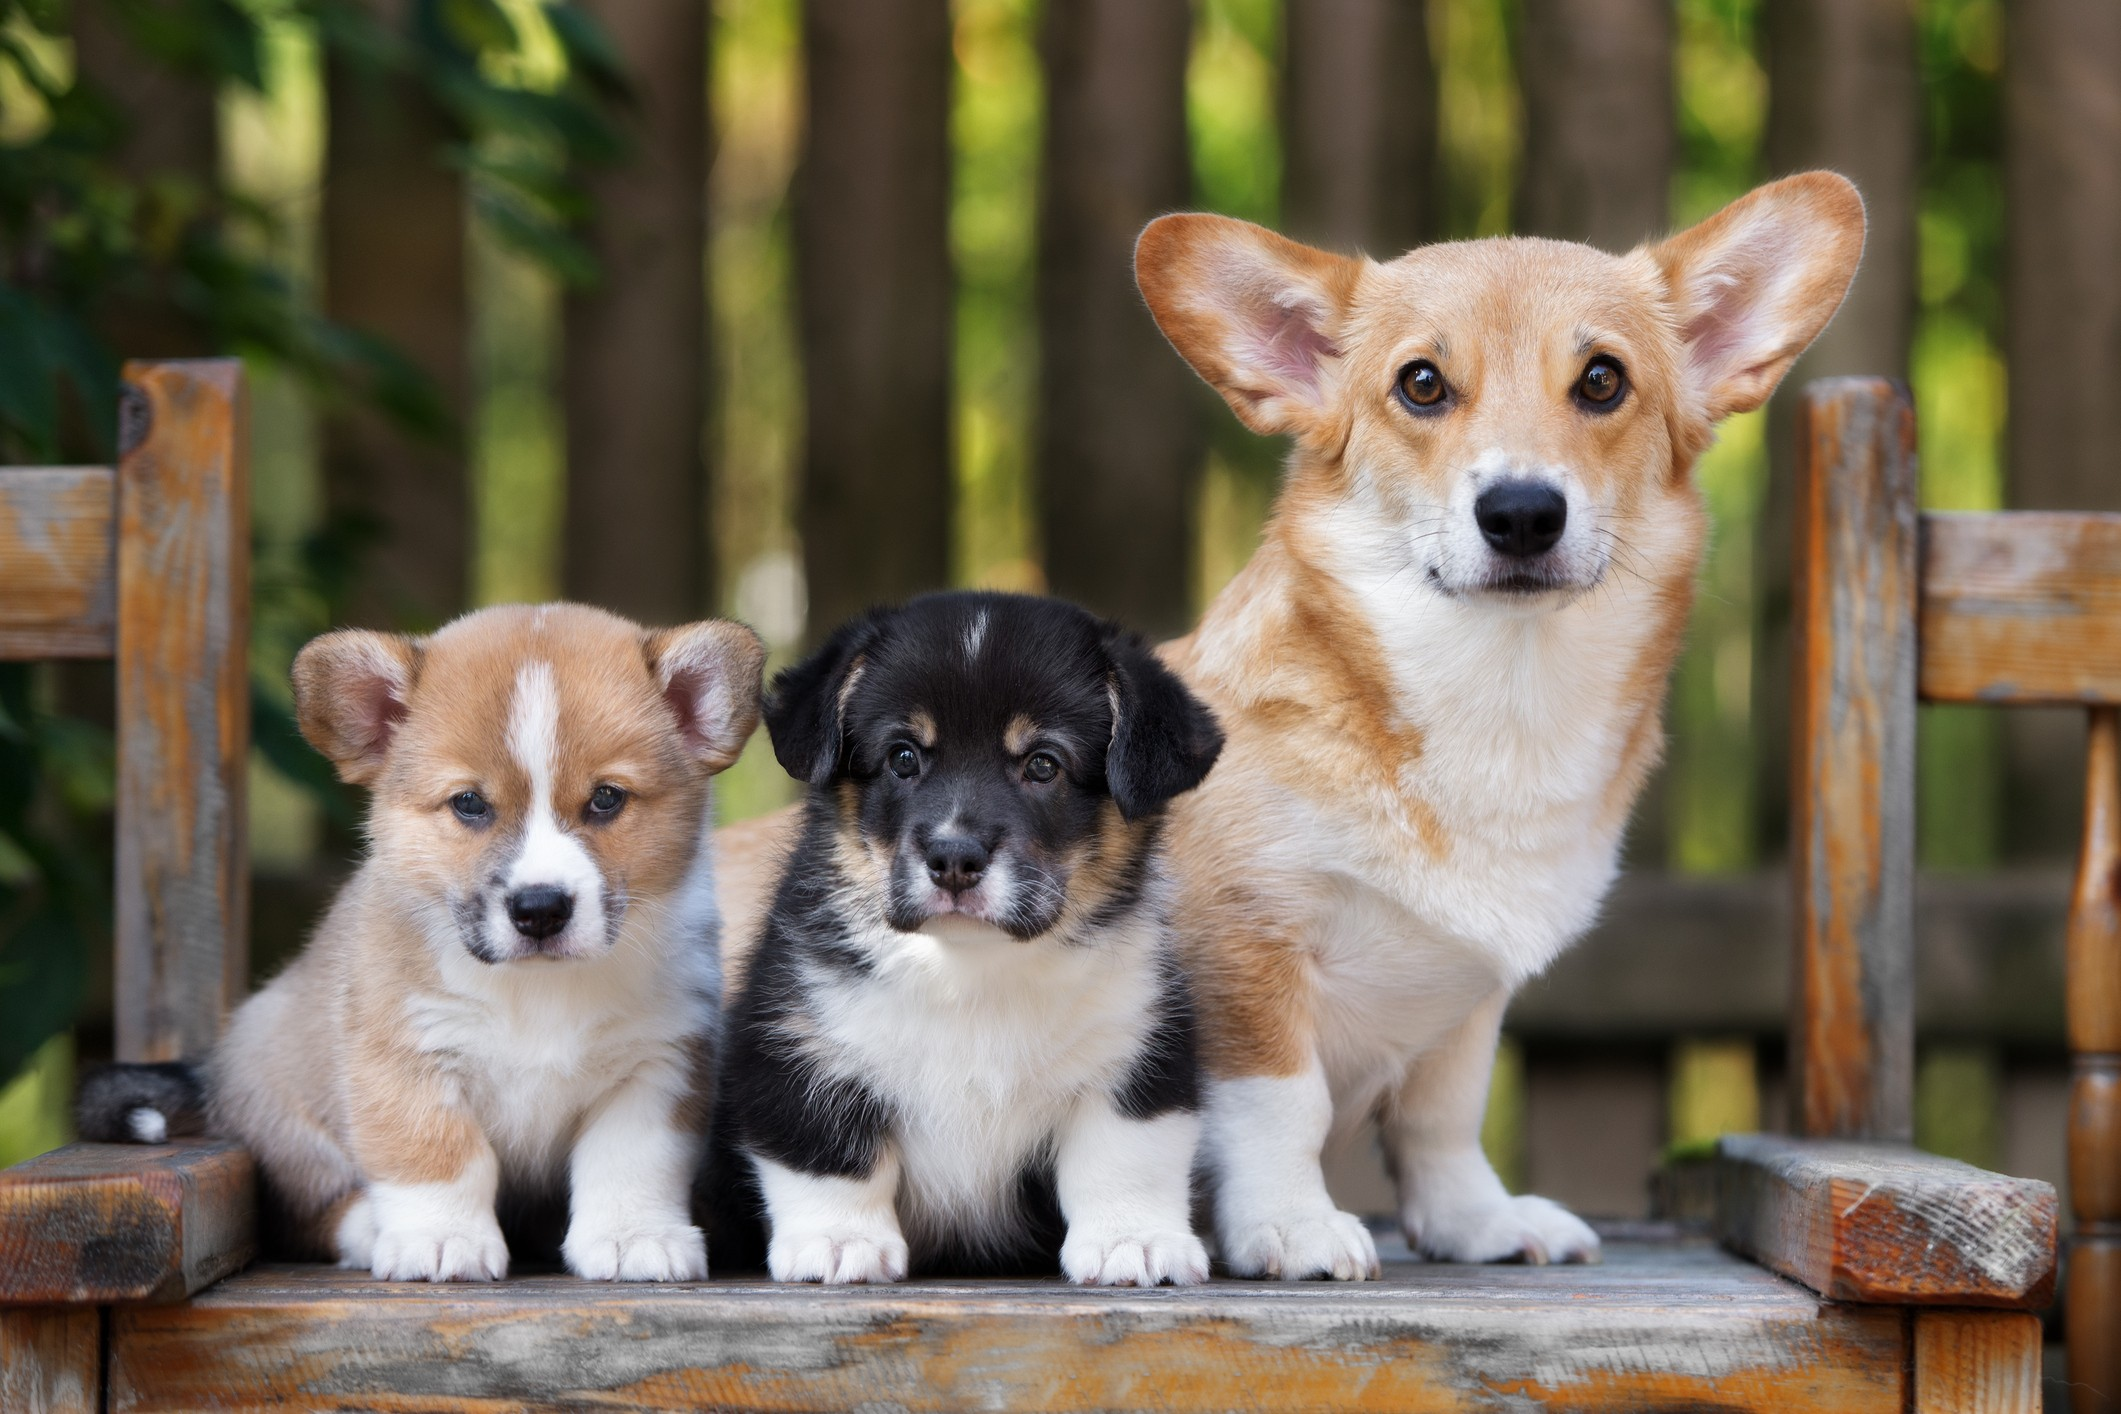 These dog breeds always have unbelievably cute puppies corgi and puppies voltagebd Image collections